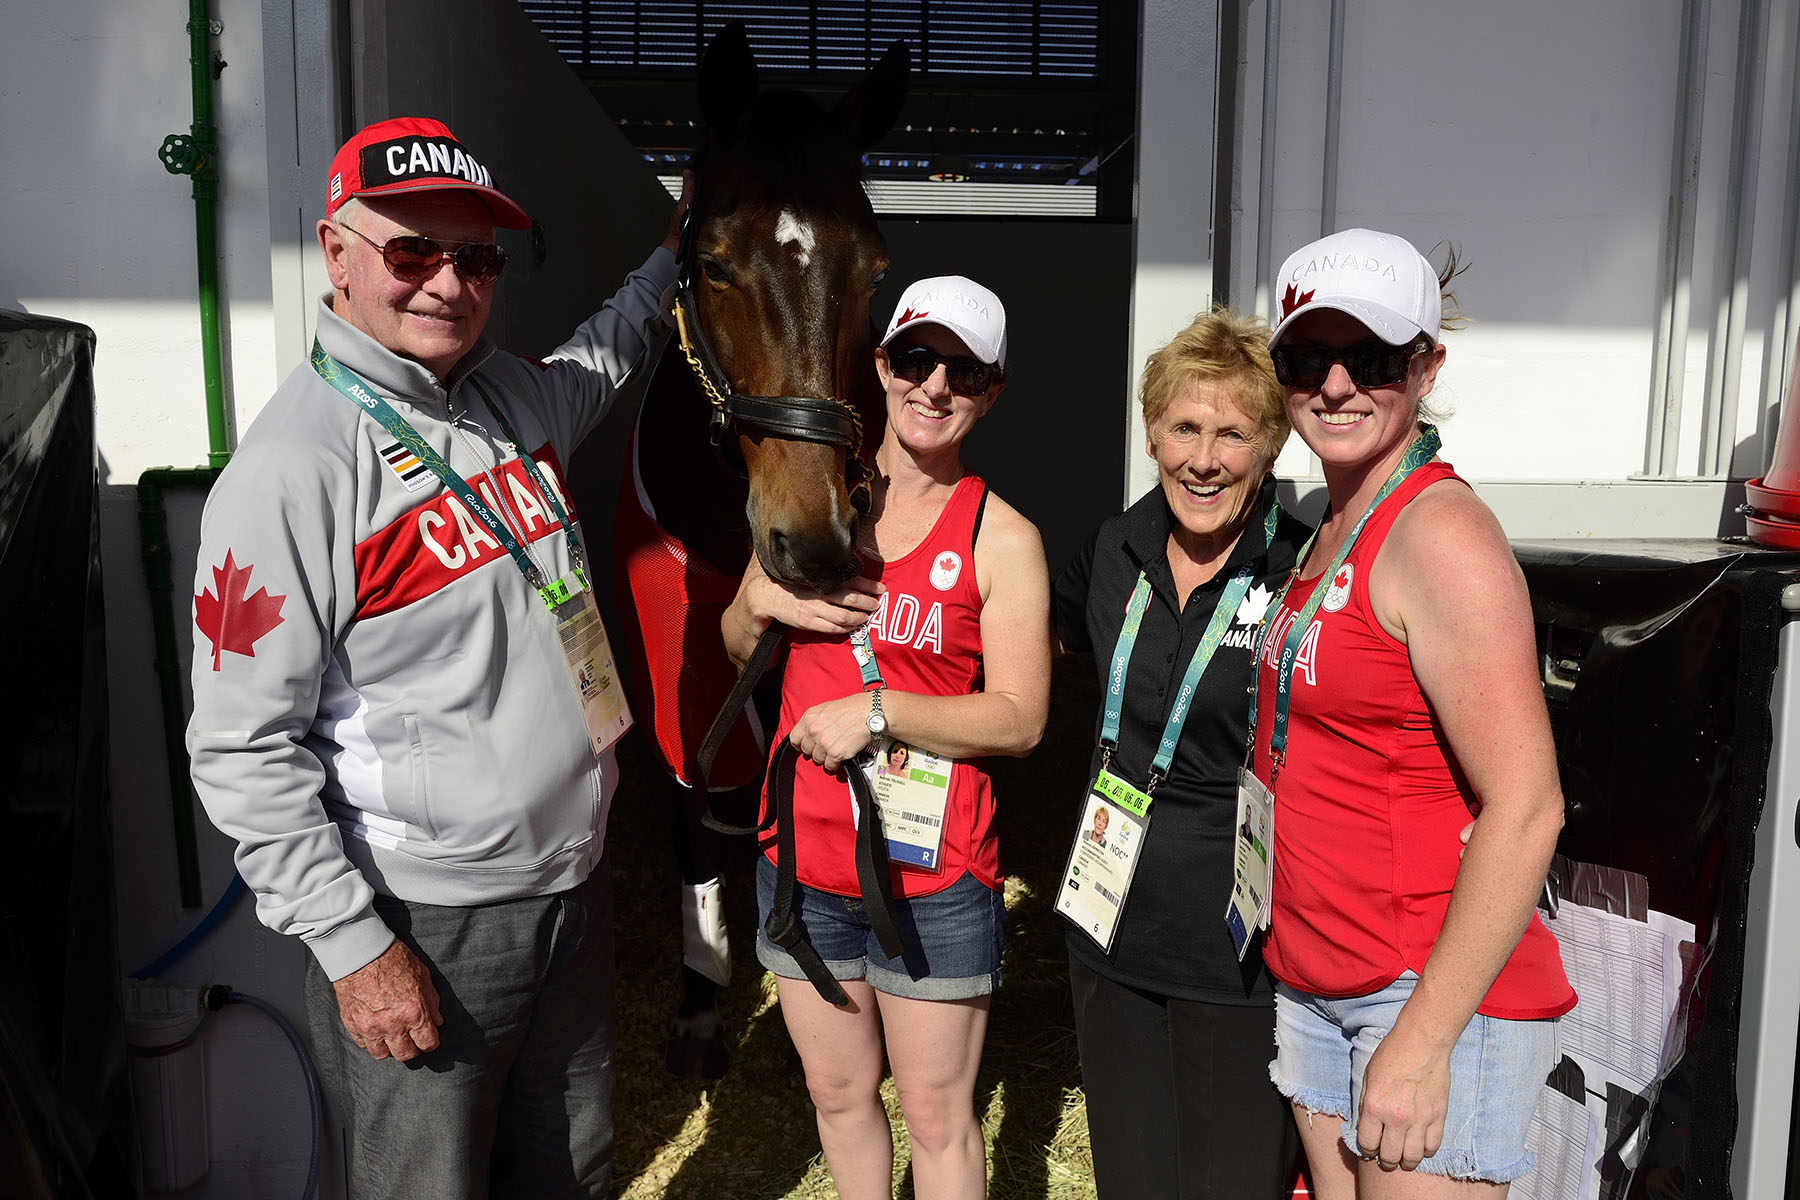 Afterwards, they visited the stables and met with members of Canada's equestrian team.